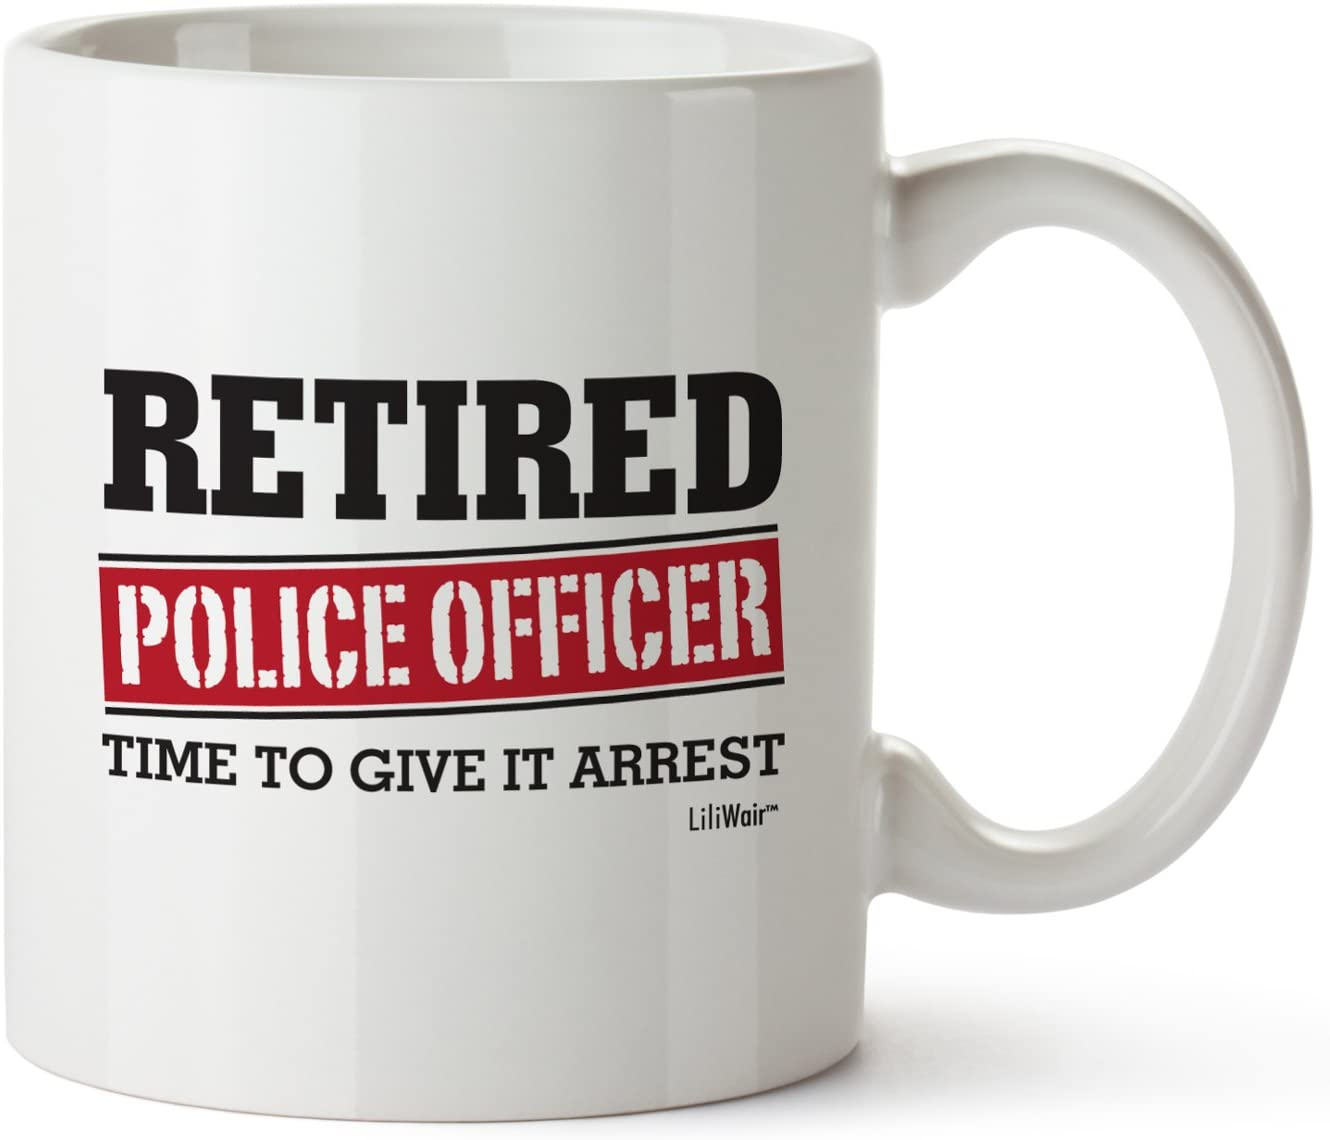 Amazon Com Retired Police Officer Gifts Mug Funny Christmas Retiring Retirement Gag Gifts For Women Men Dad Mom Retirement Coffee Mug Gift Retired Mugs For Coworkers Office Family Unique Ideas For Her